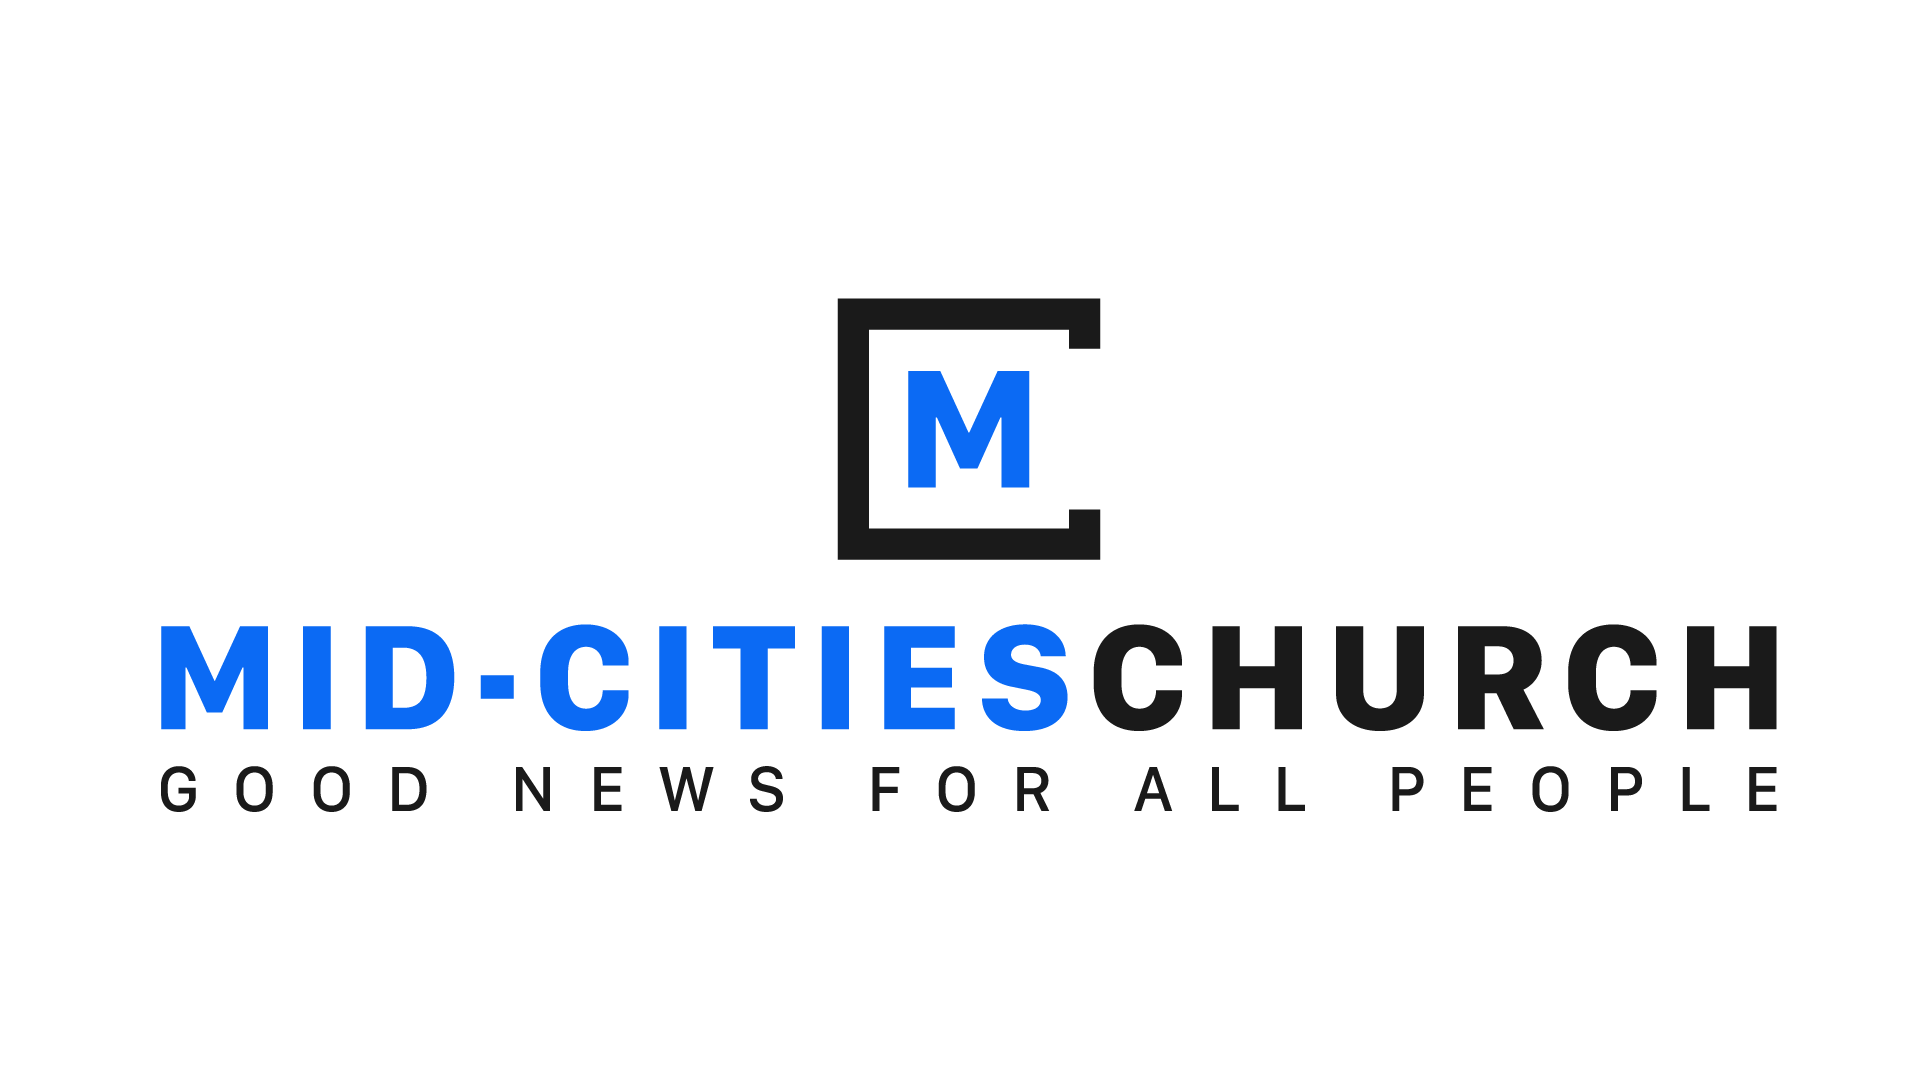 Mid-Cities Church - Red Tree Church planted Mid-Cities in 2014 in the heart of the Dogtown/Maplewood neighborhood of St. Louis.